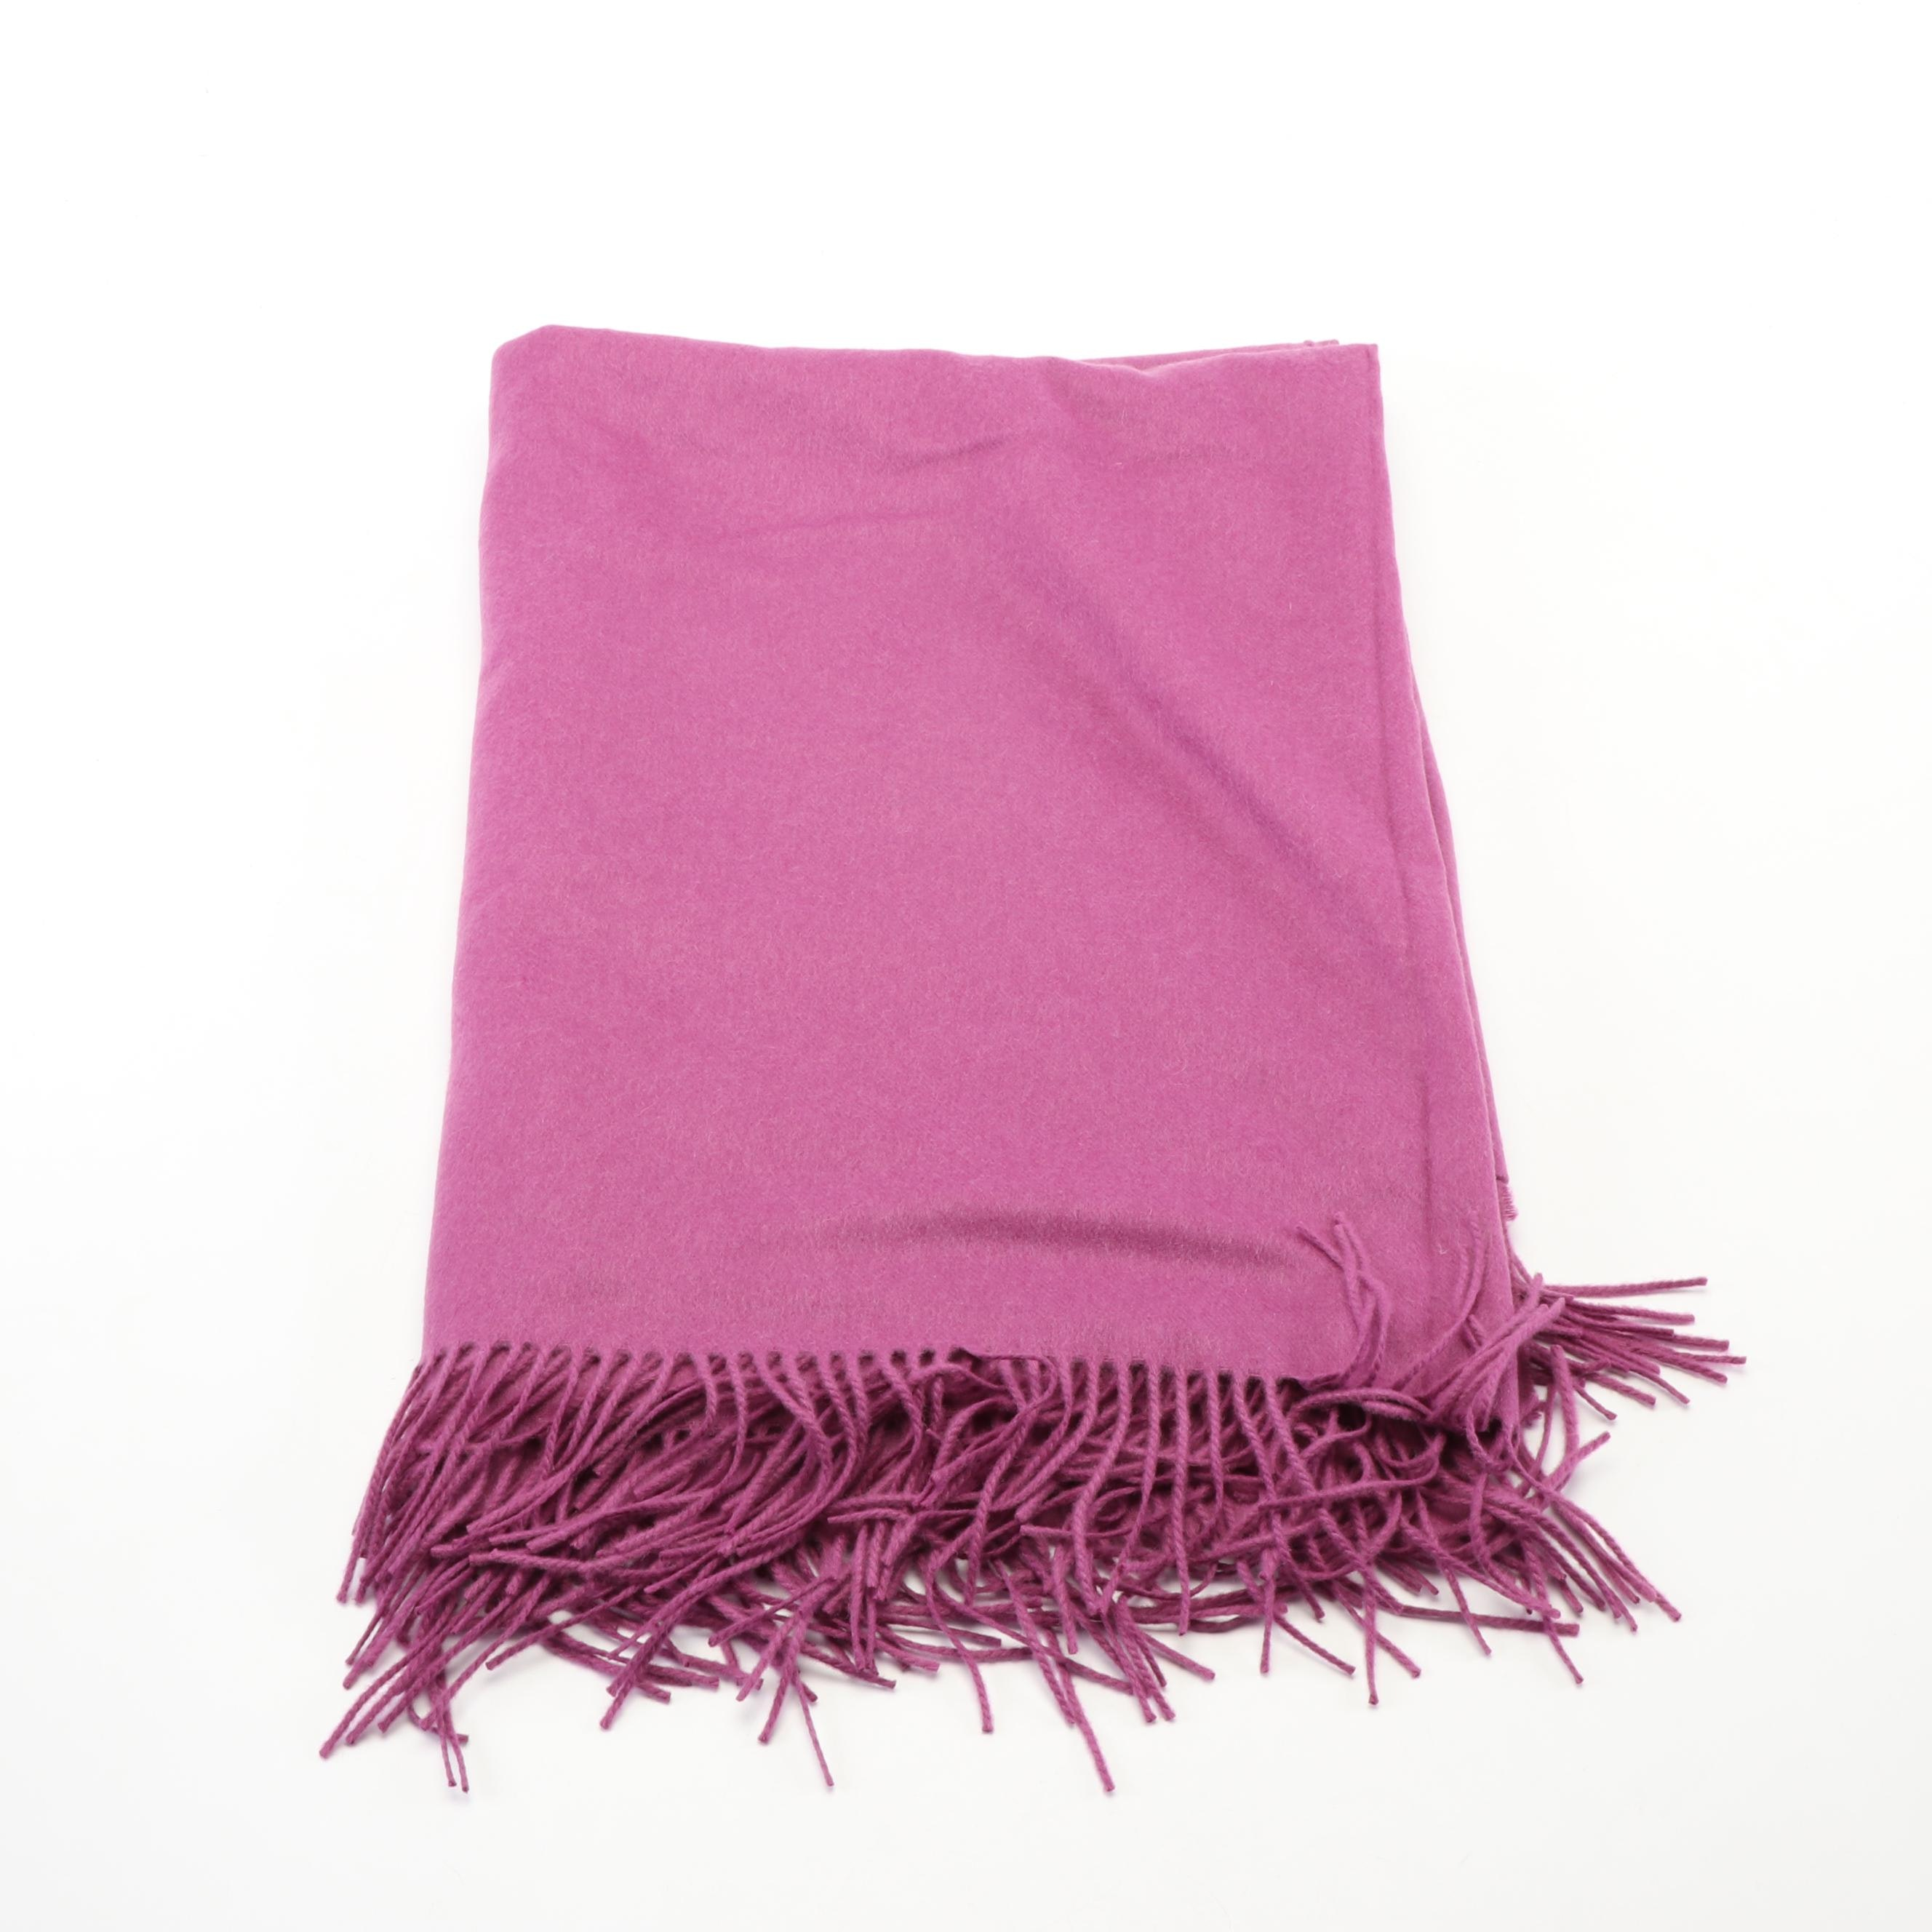 Johnstons of Elgin Magenta 100% Cashmere Shawl with Fringe, Made in Scotland